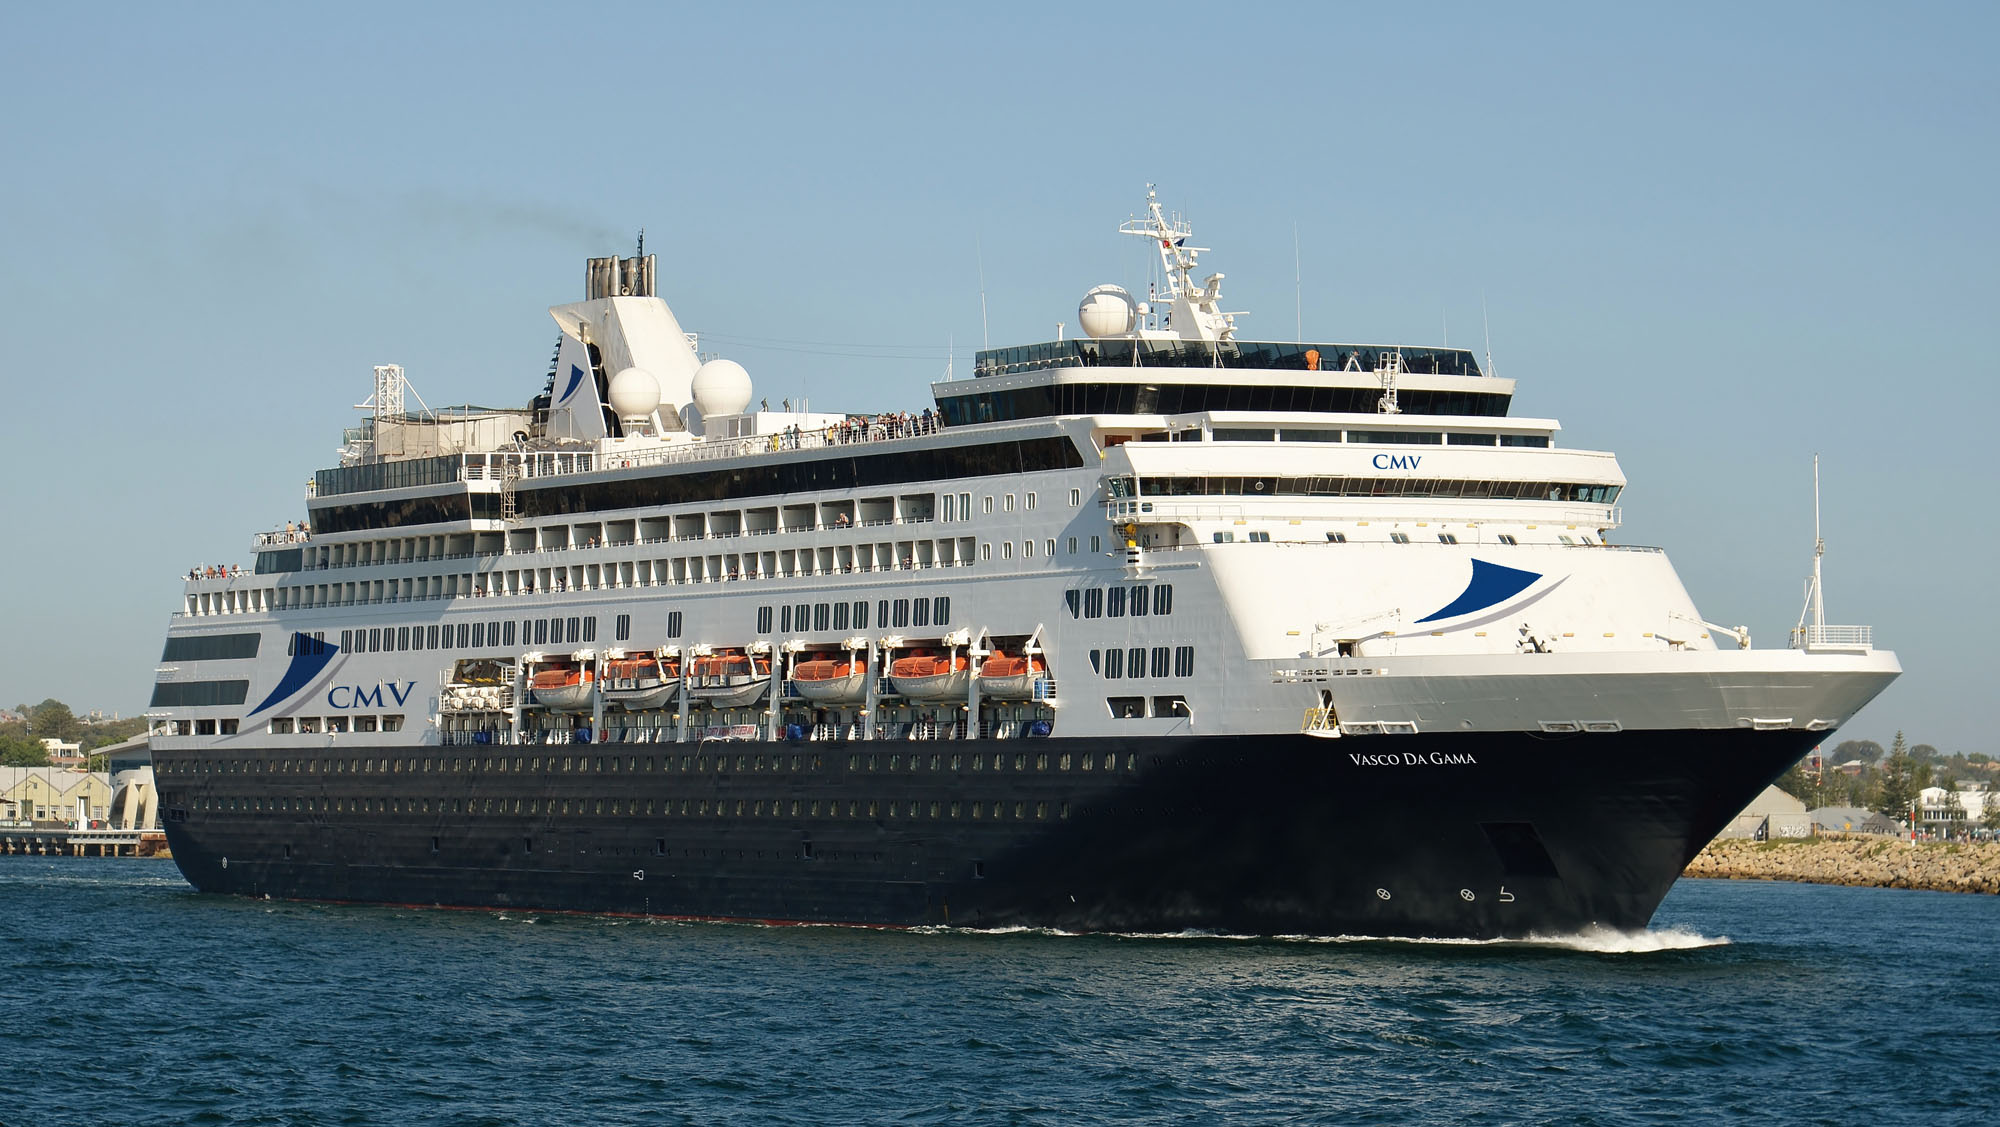 And Vasco Da Gama Vasco Da Gama Cruise Ship Ocean Cruise Newmarketholidays